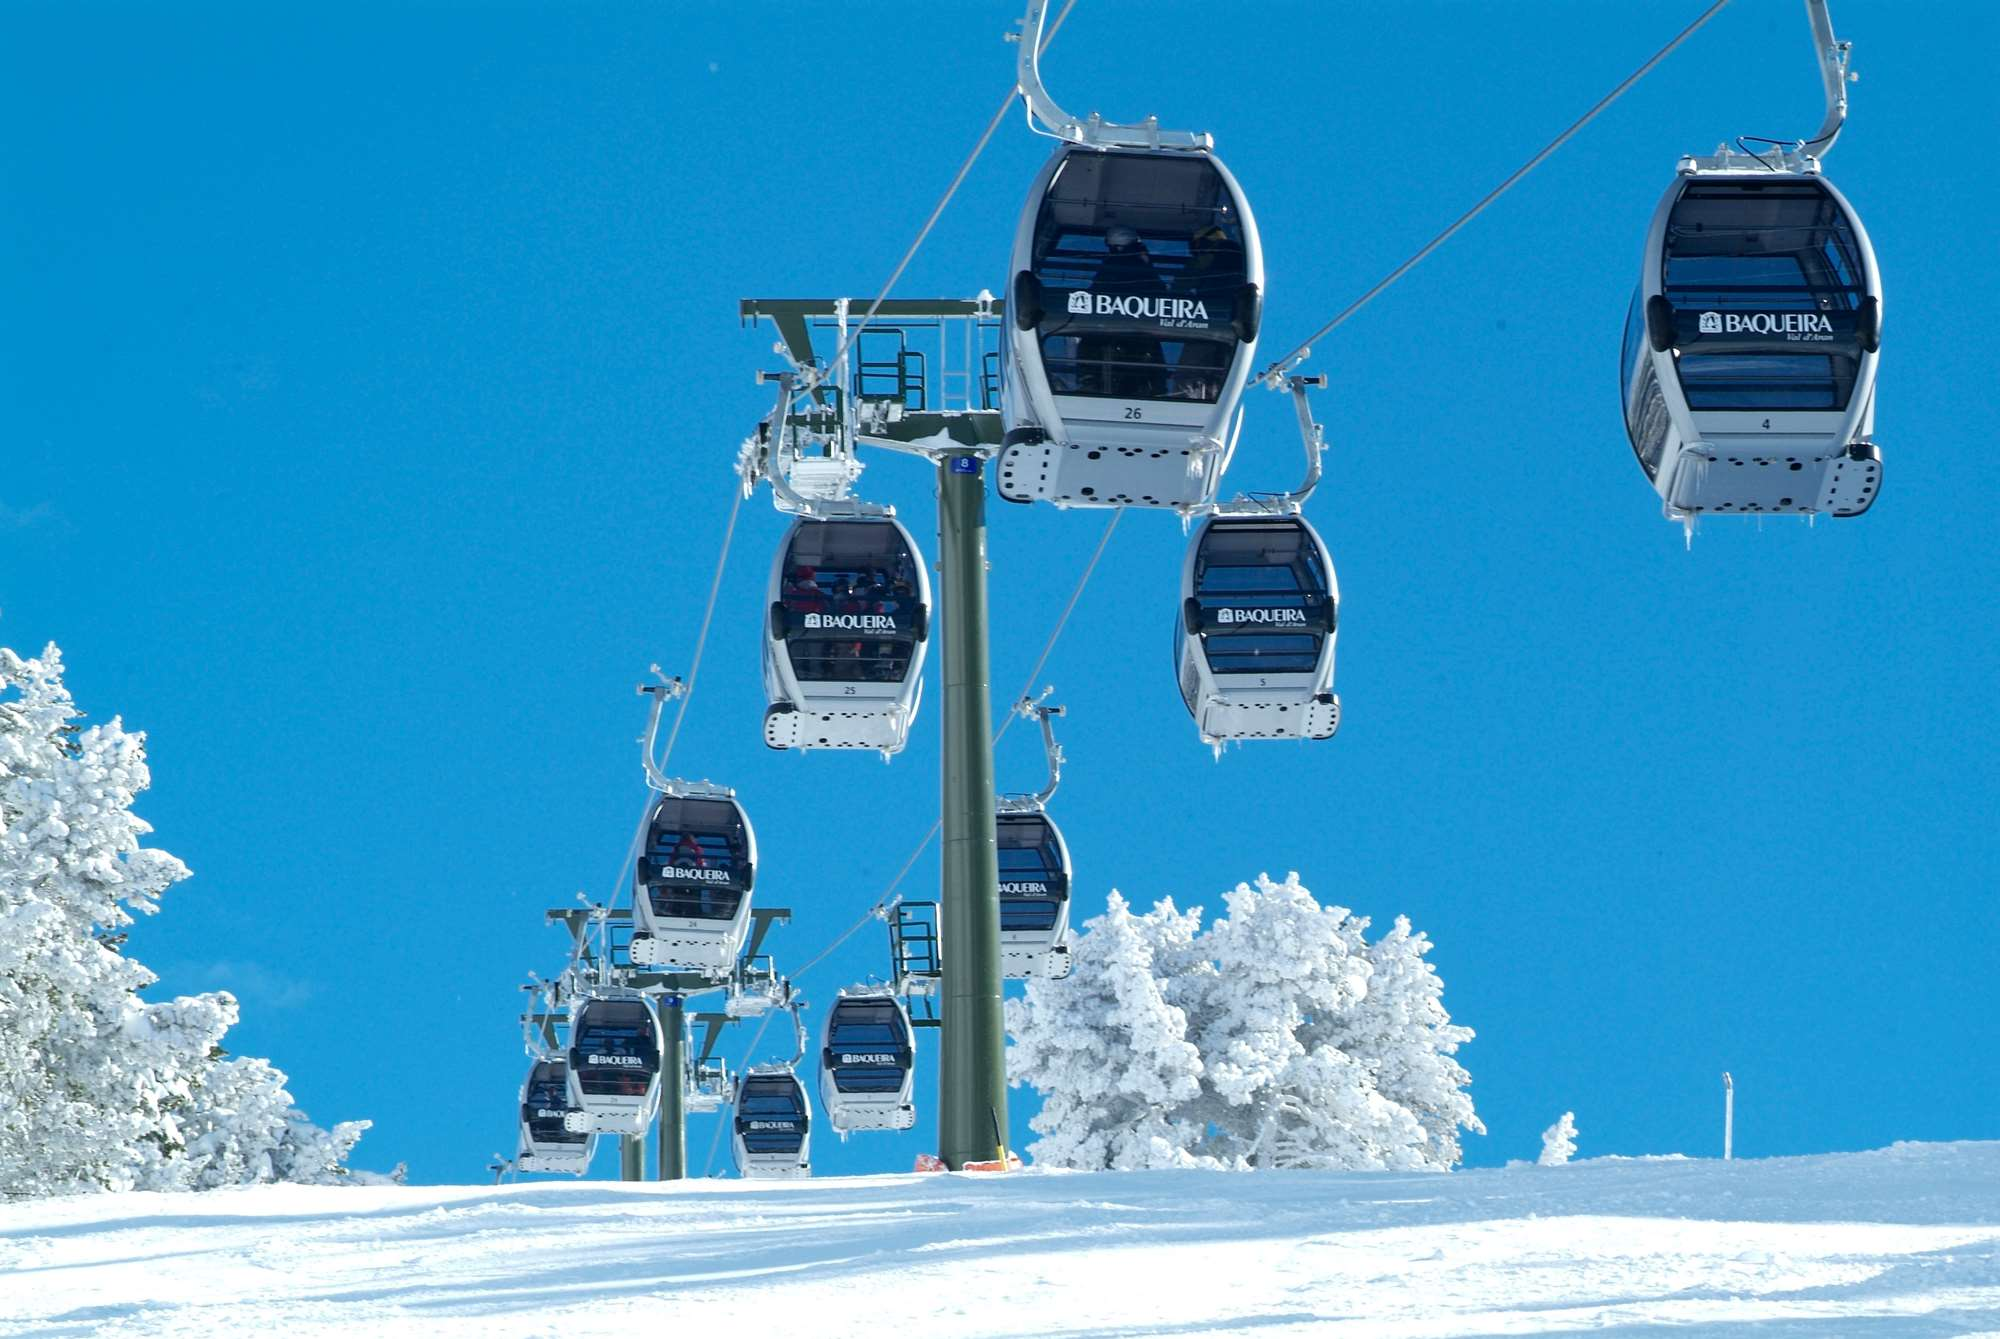 The gondola lift in Baqueira